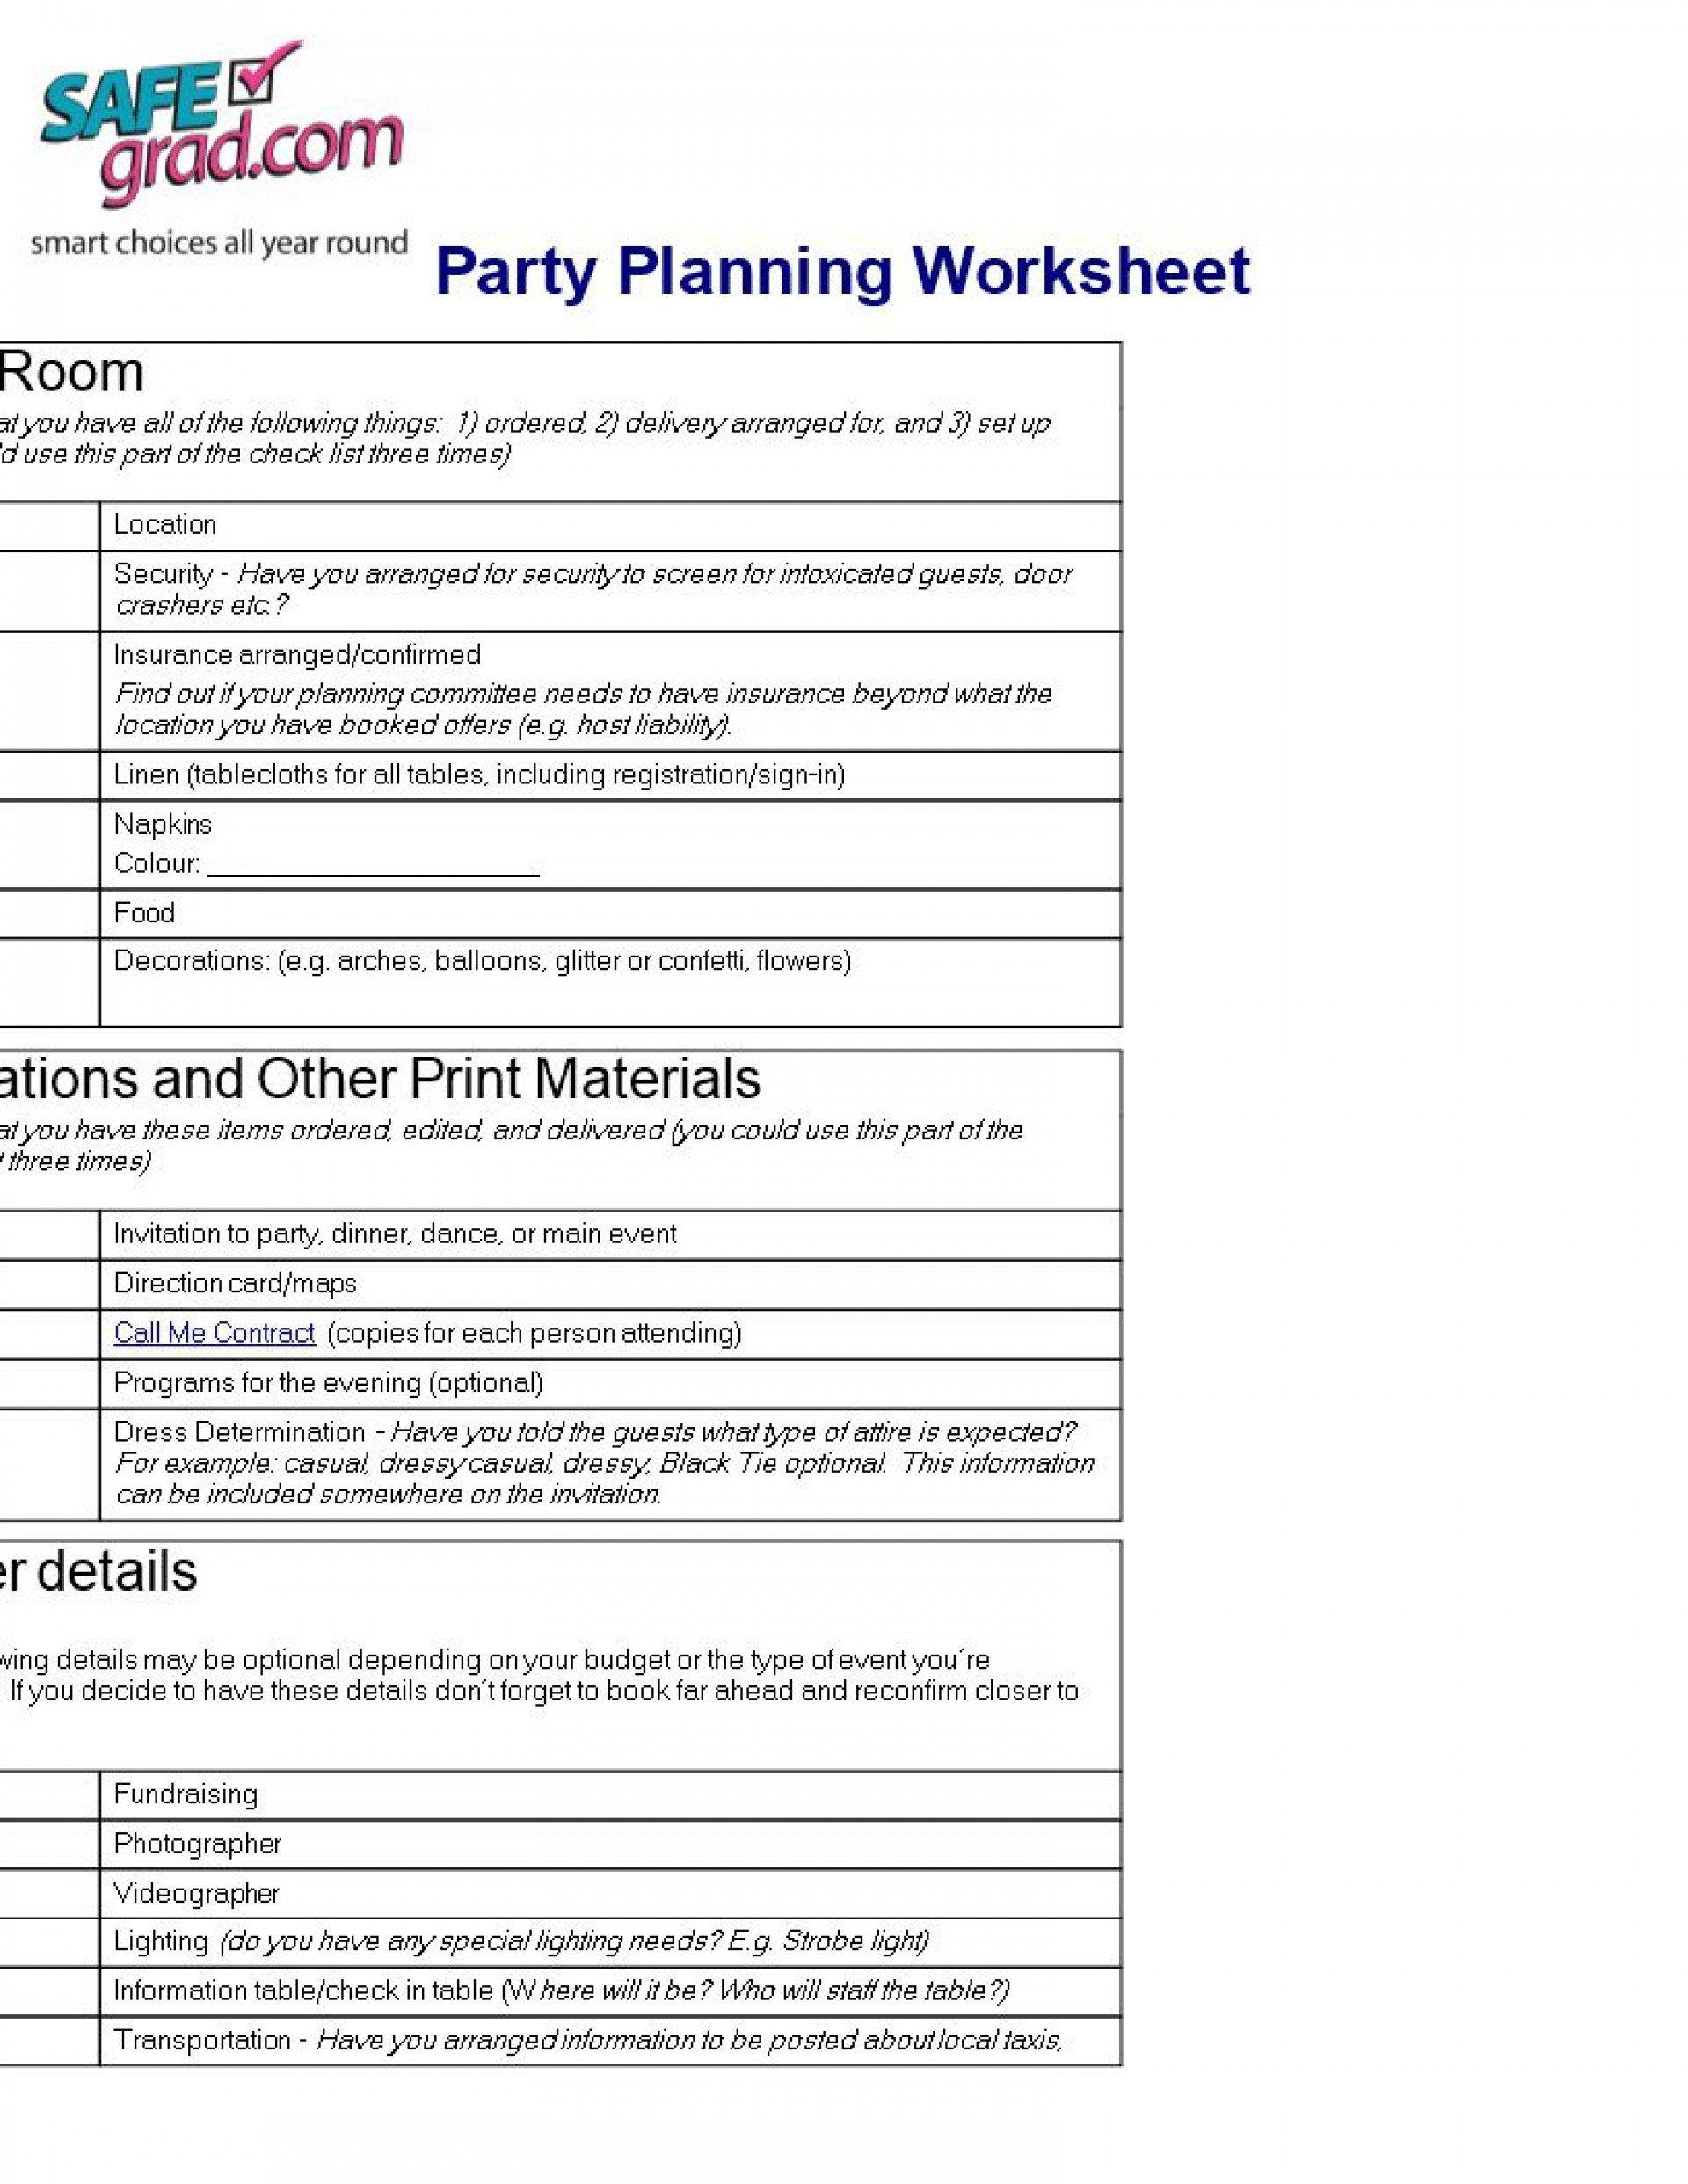 007 Beautiful Party Plan Checklist Template Picture  Planning Free Graduation Birthday1920